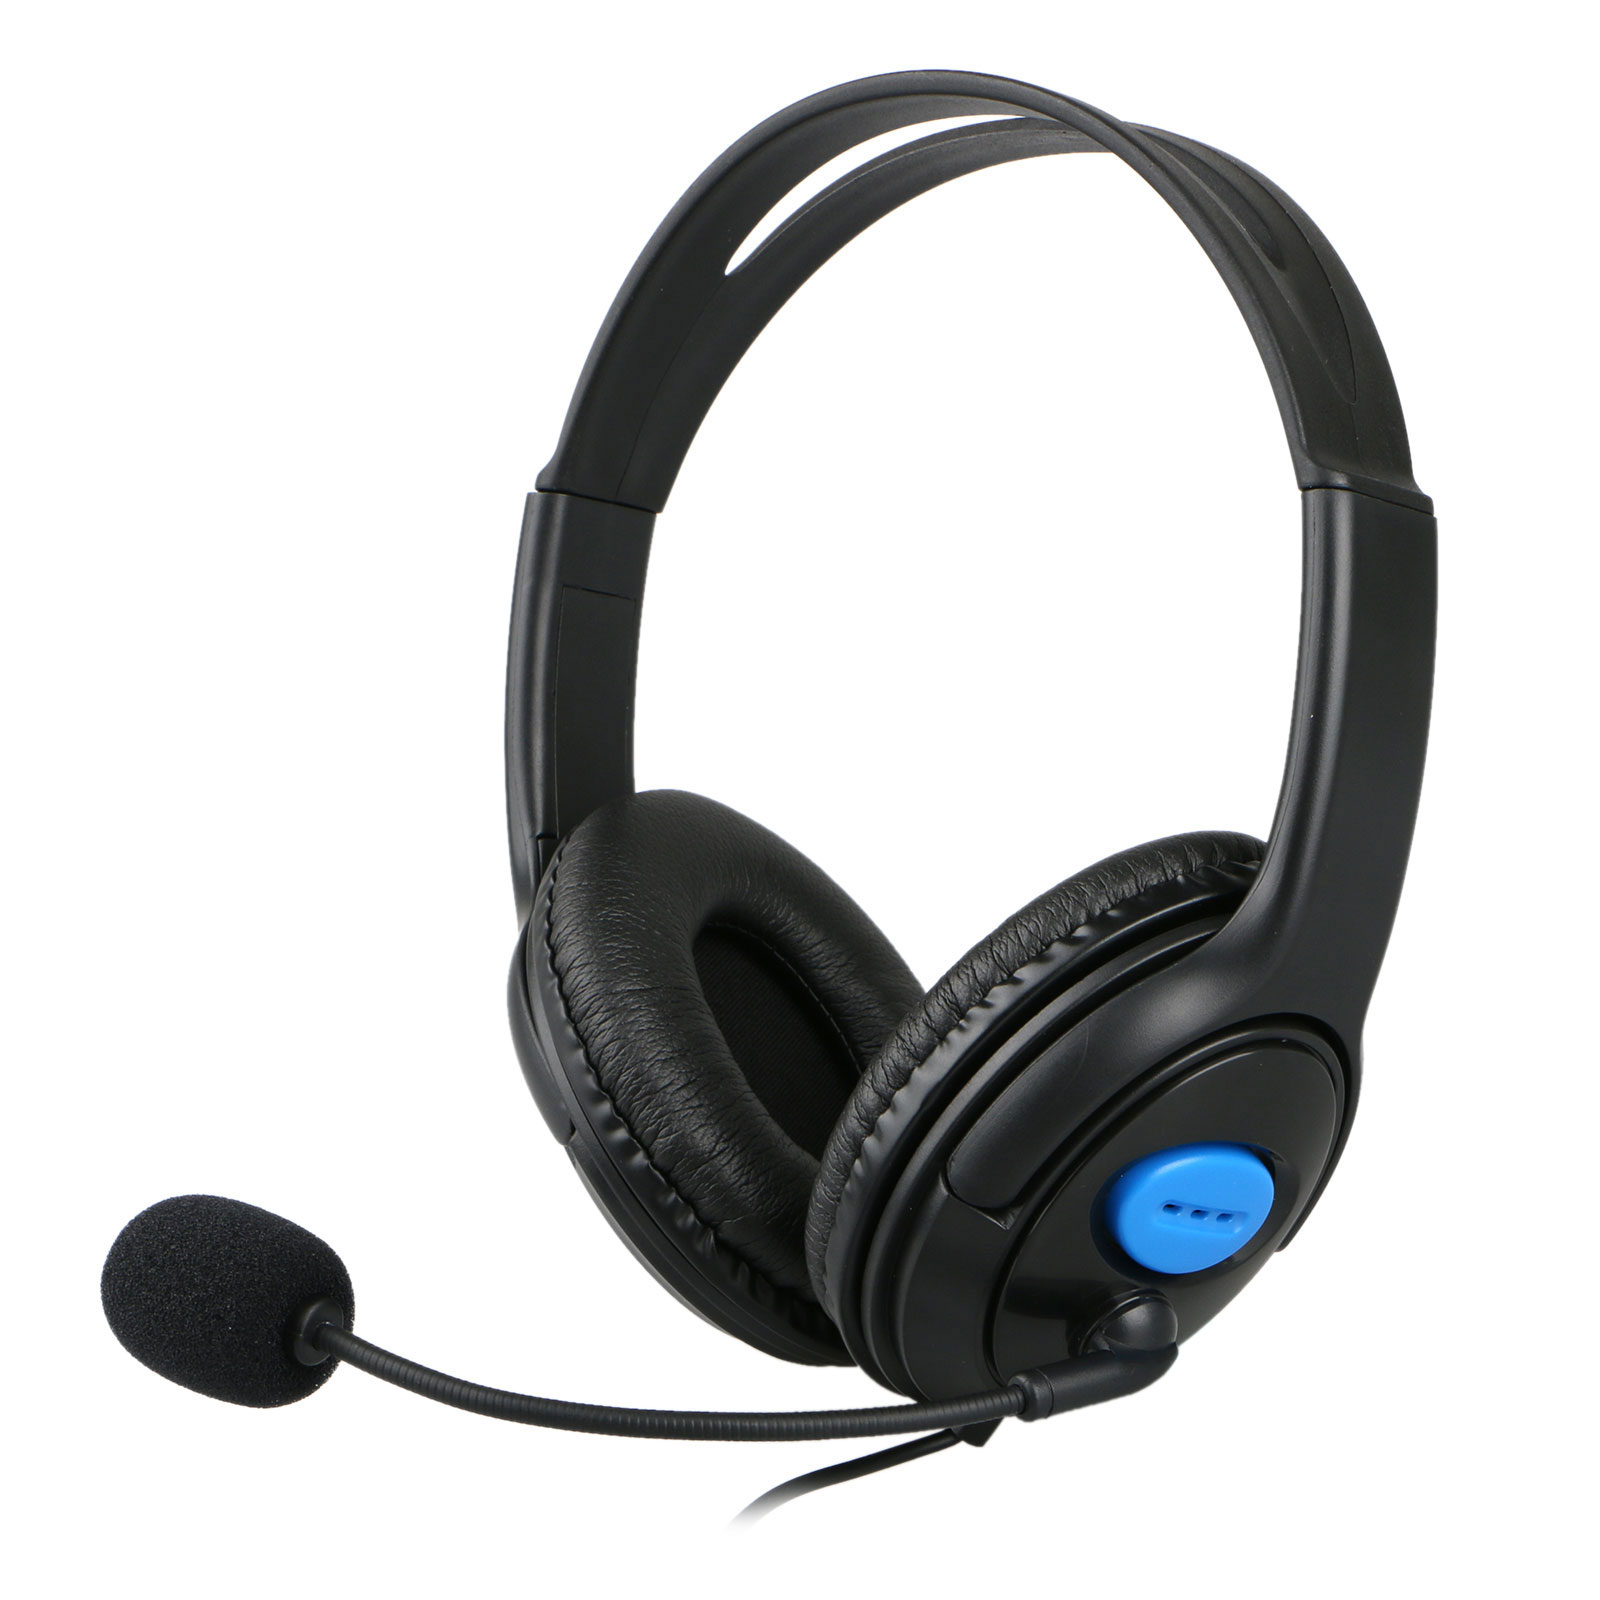 Stereo Gaming Headset for PS4, Xbox One,  PC, Mac, Laptop, EEEKit Wired Over Ear Headphones with Noise Canceling Mic, Surround Sound & Soft Memory Earmuffs